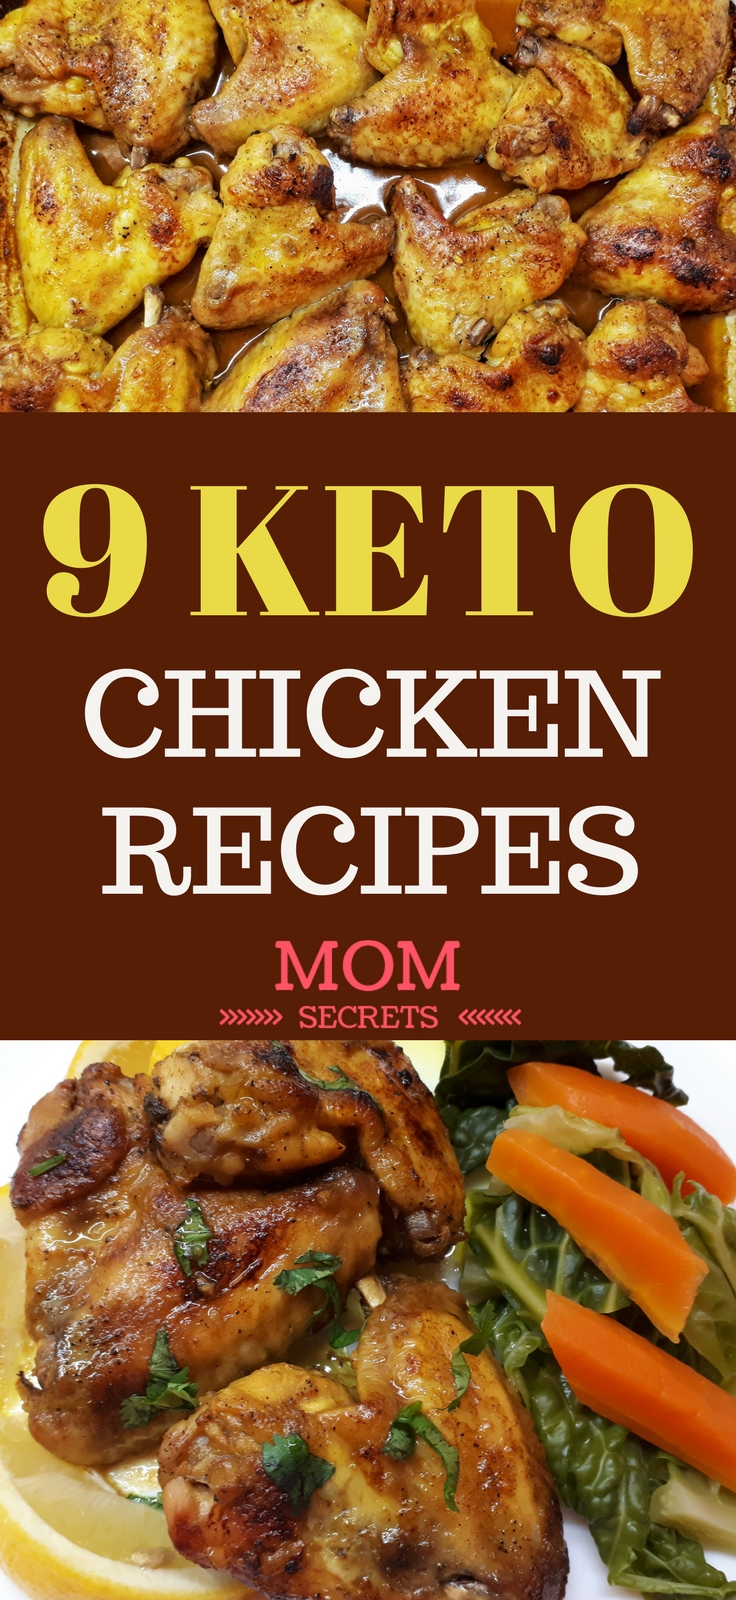 These keto and low carb recipes are easy and quick to prepare. They are excellent options for a weeknight dinner or for a lunch.